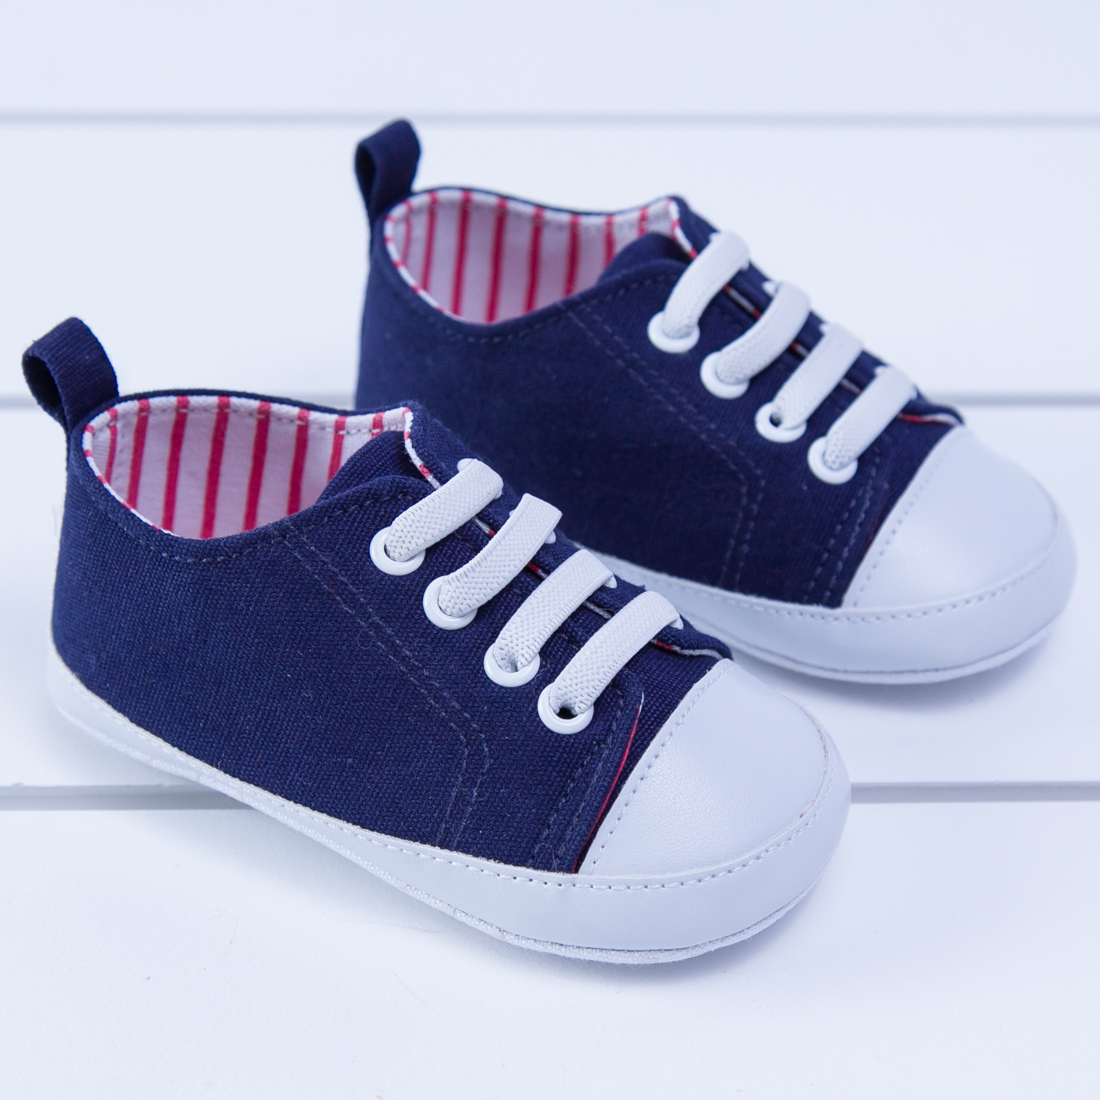 Infant Navy and Red Stripe Sneakers